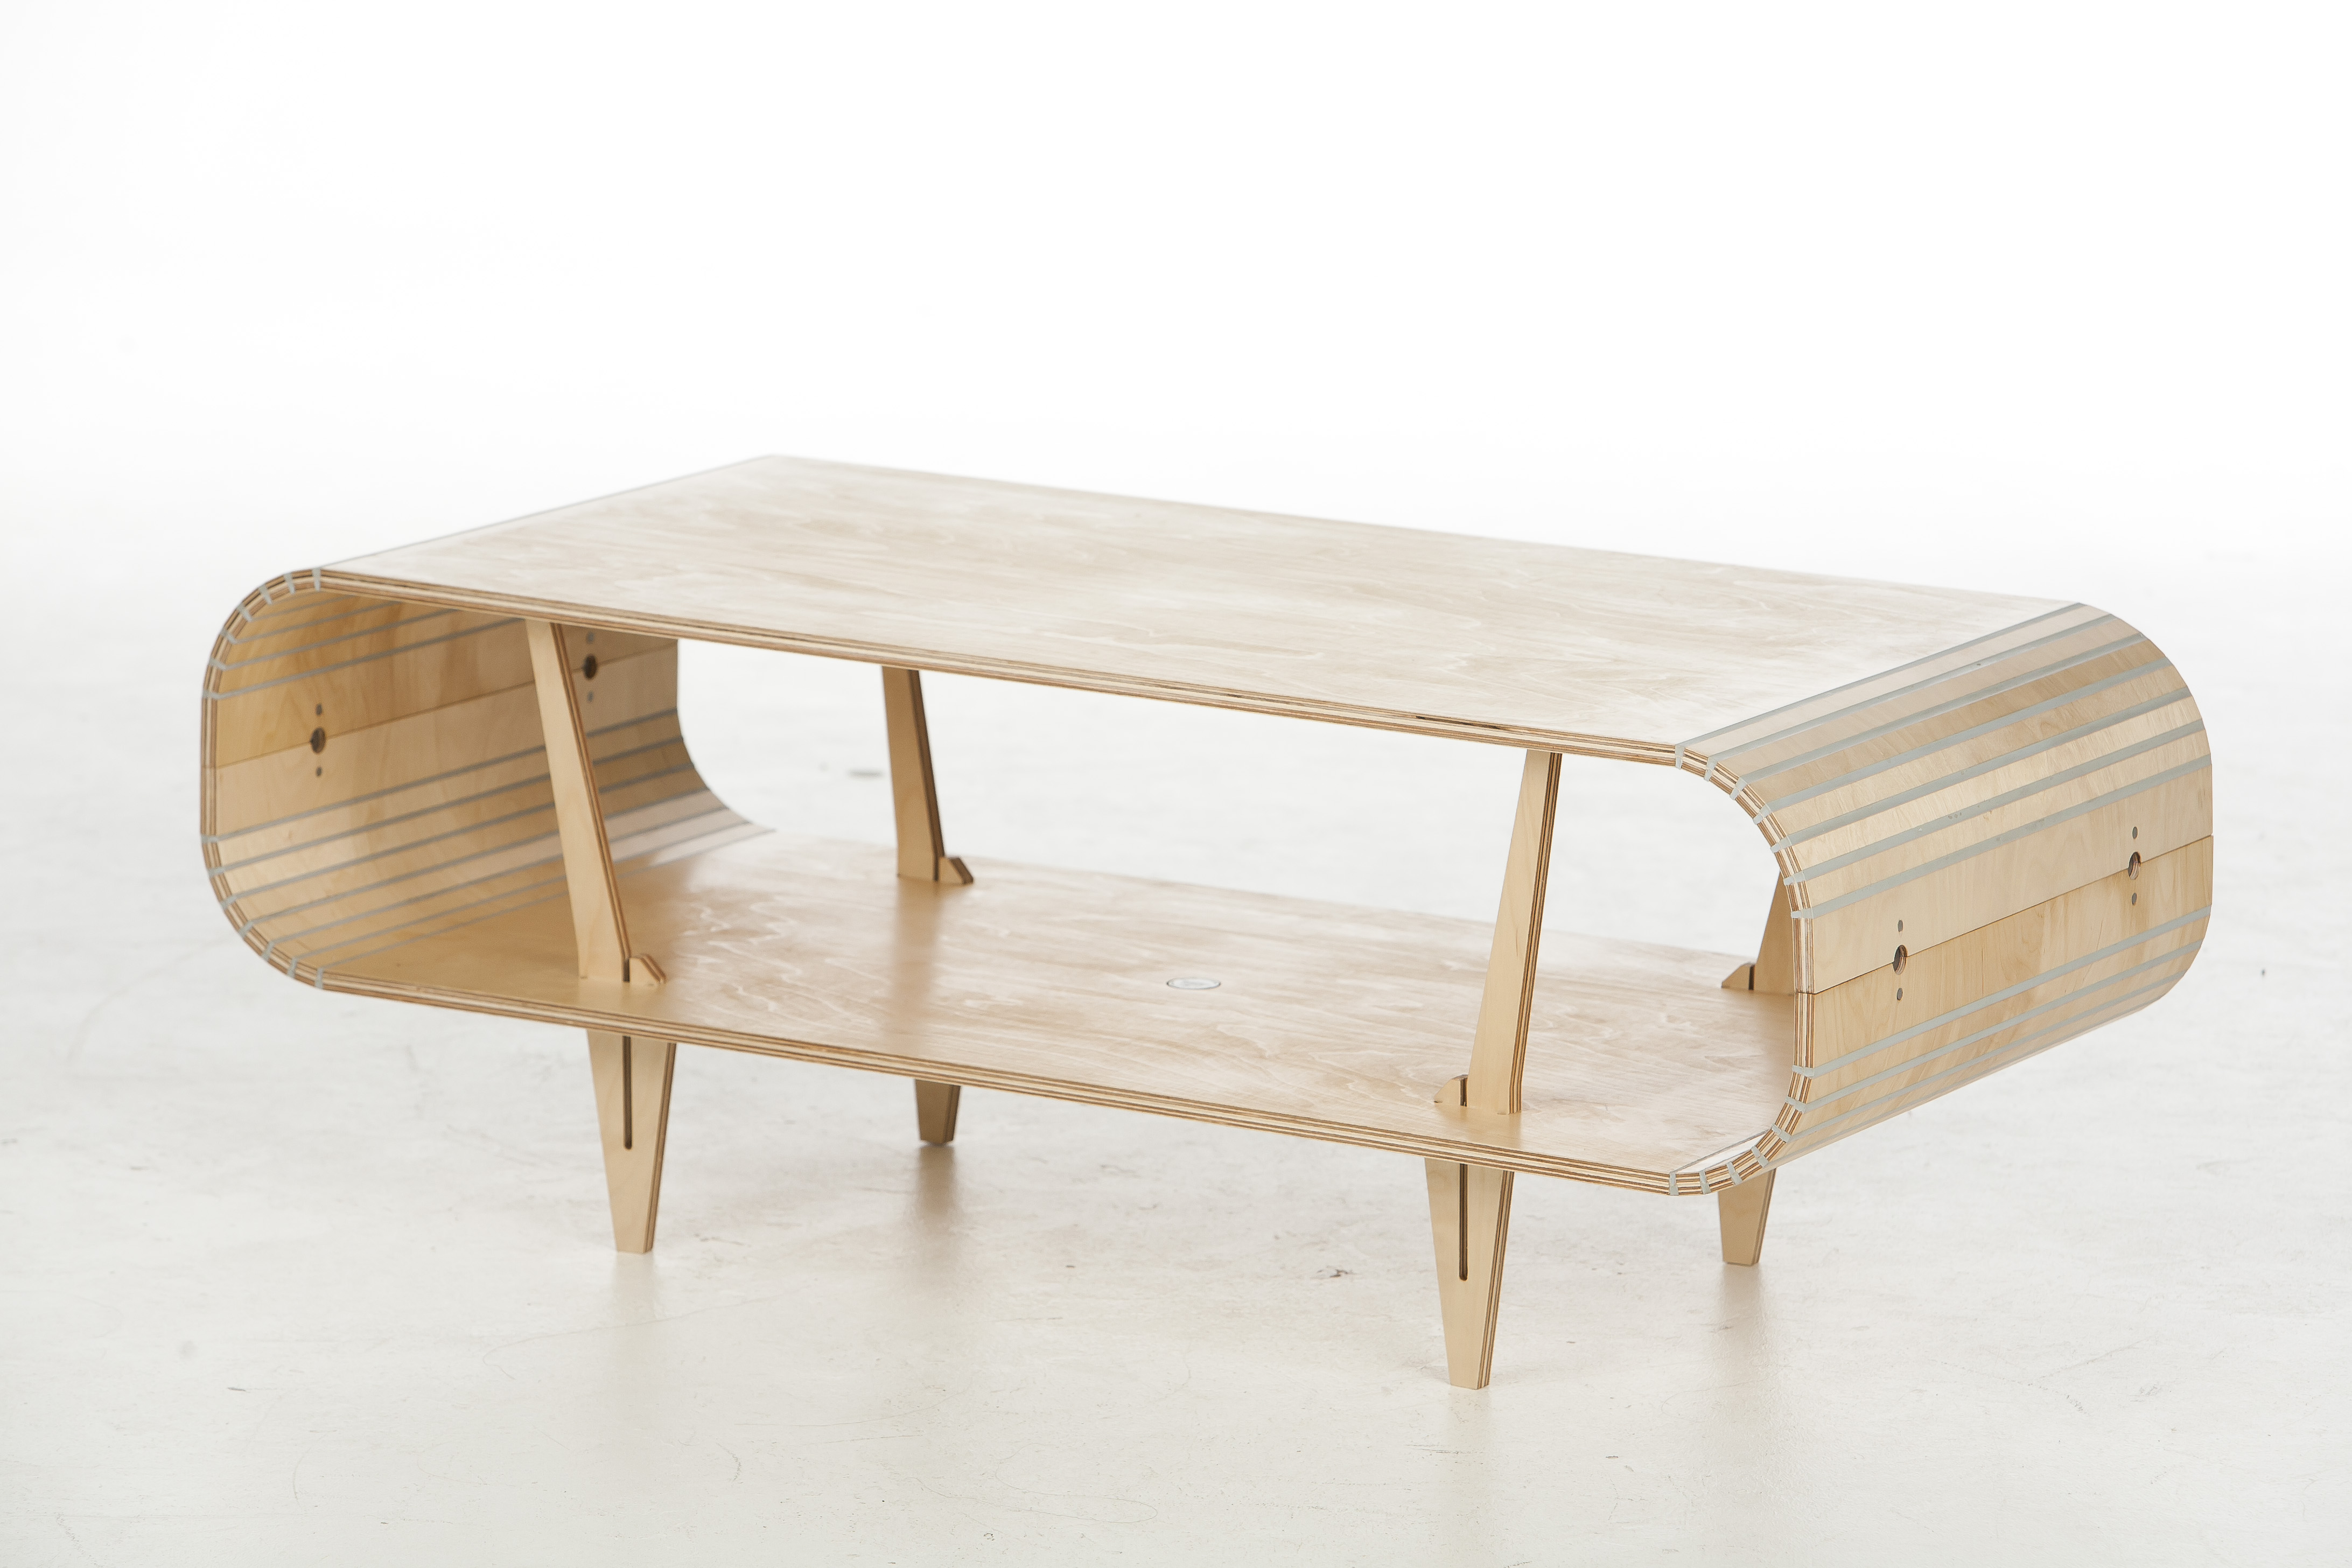 Orbit coffee table by Stratflex